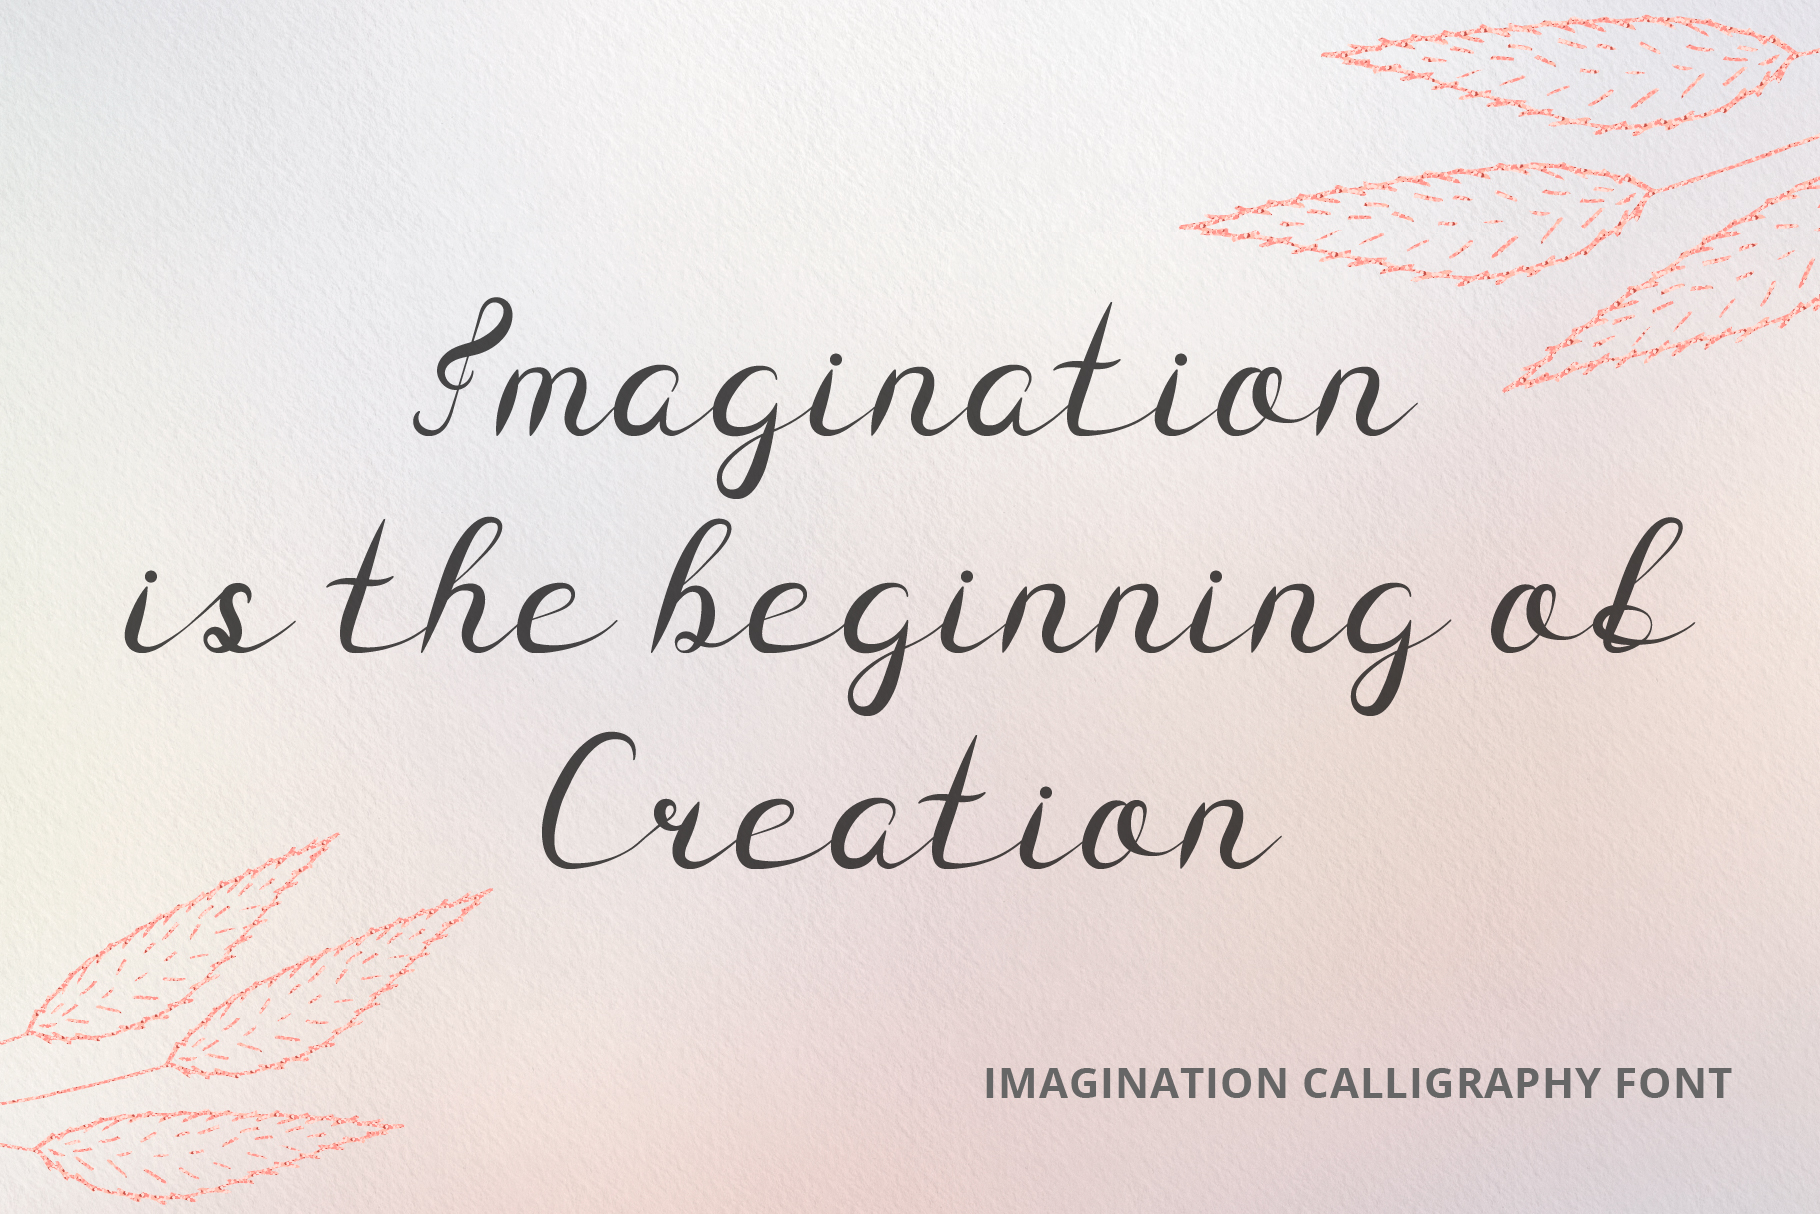 Imagination Calligraphy Font example image 2